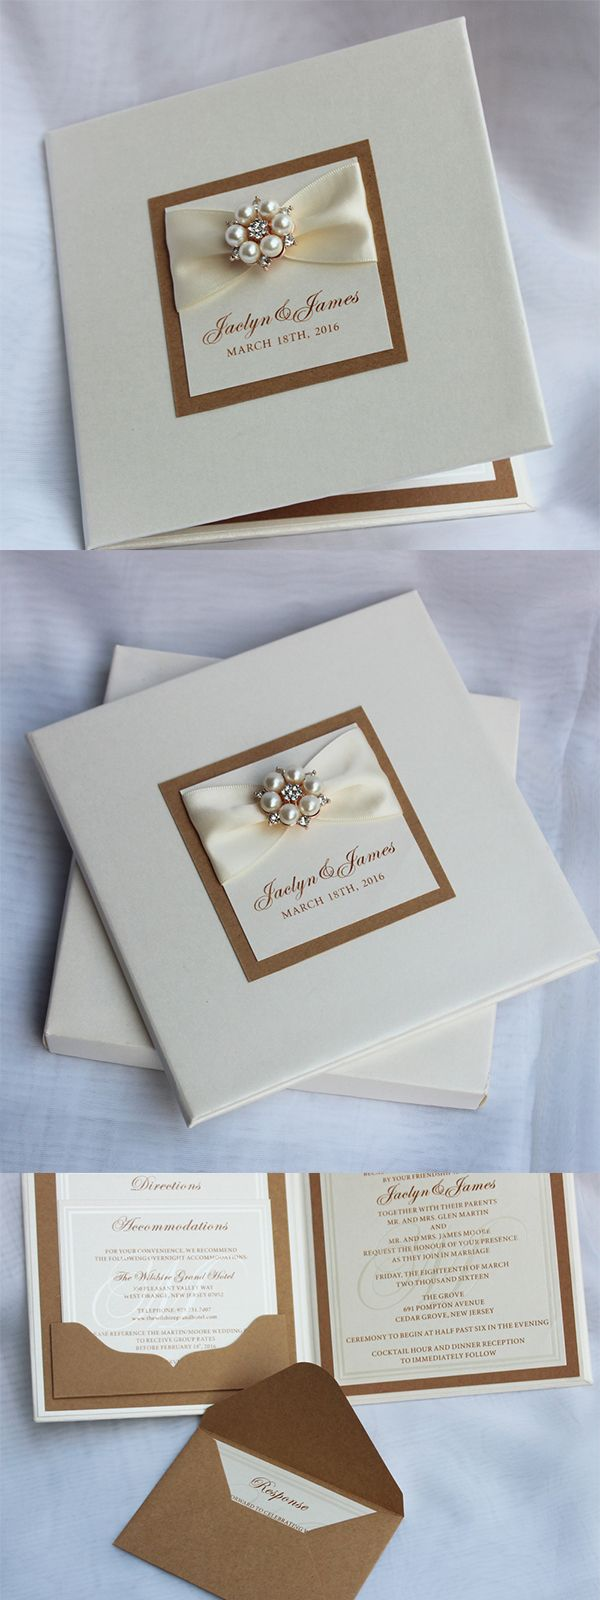 Verona wedding invitation boxed white lace amp pearl brooch w - Luxury Hardcover Invitations With Brooch